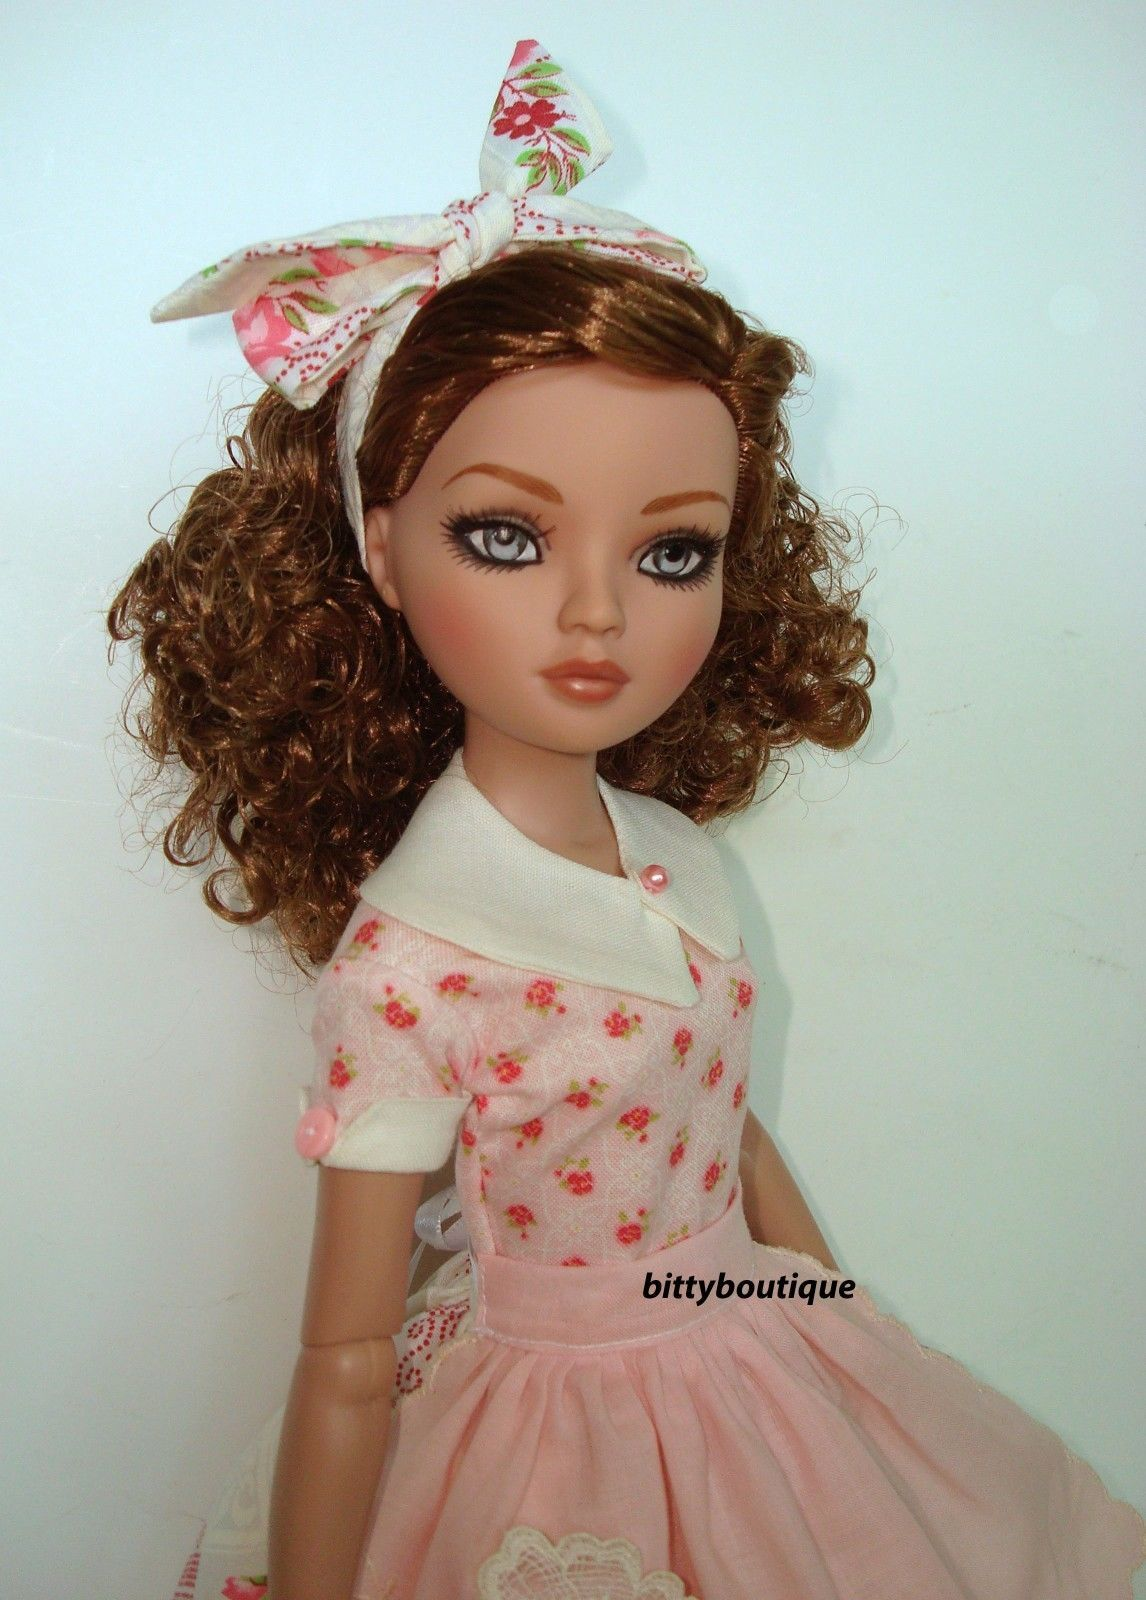 New 50 39 S Style Dress Outfit For Ellowyne Skirt Top Apron Ebay Bittyboutique Dolls Tonner